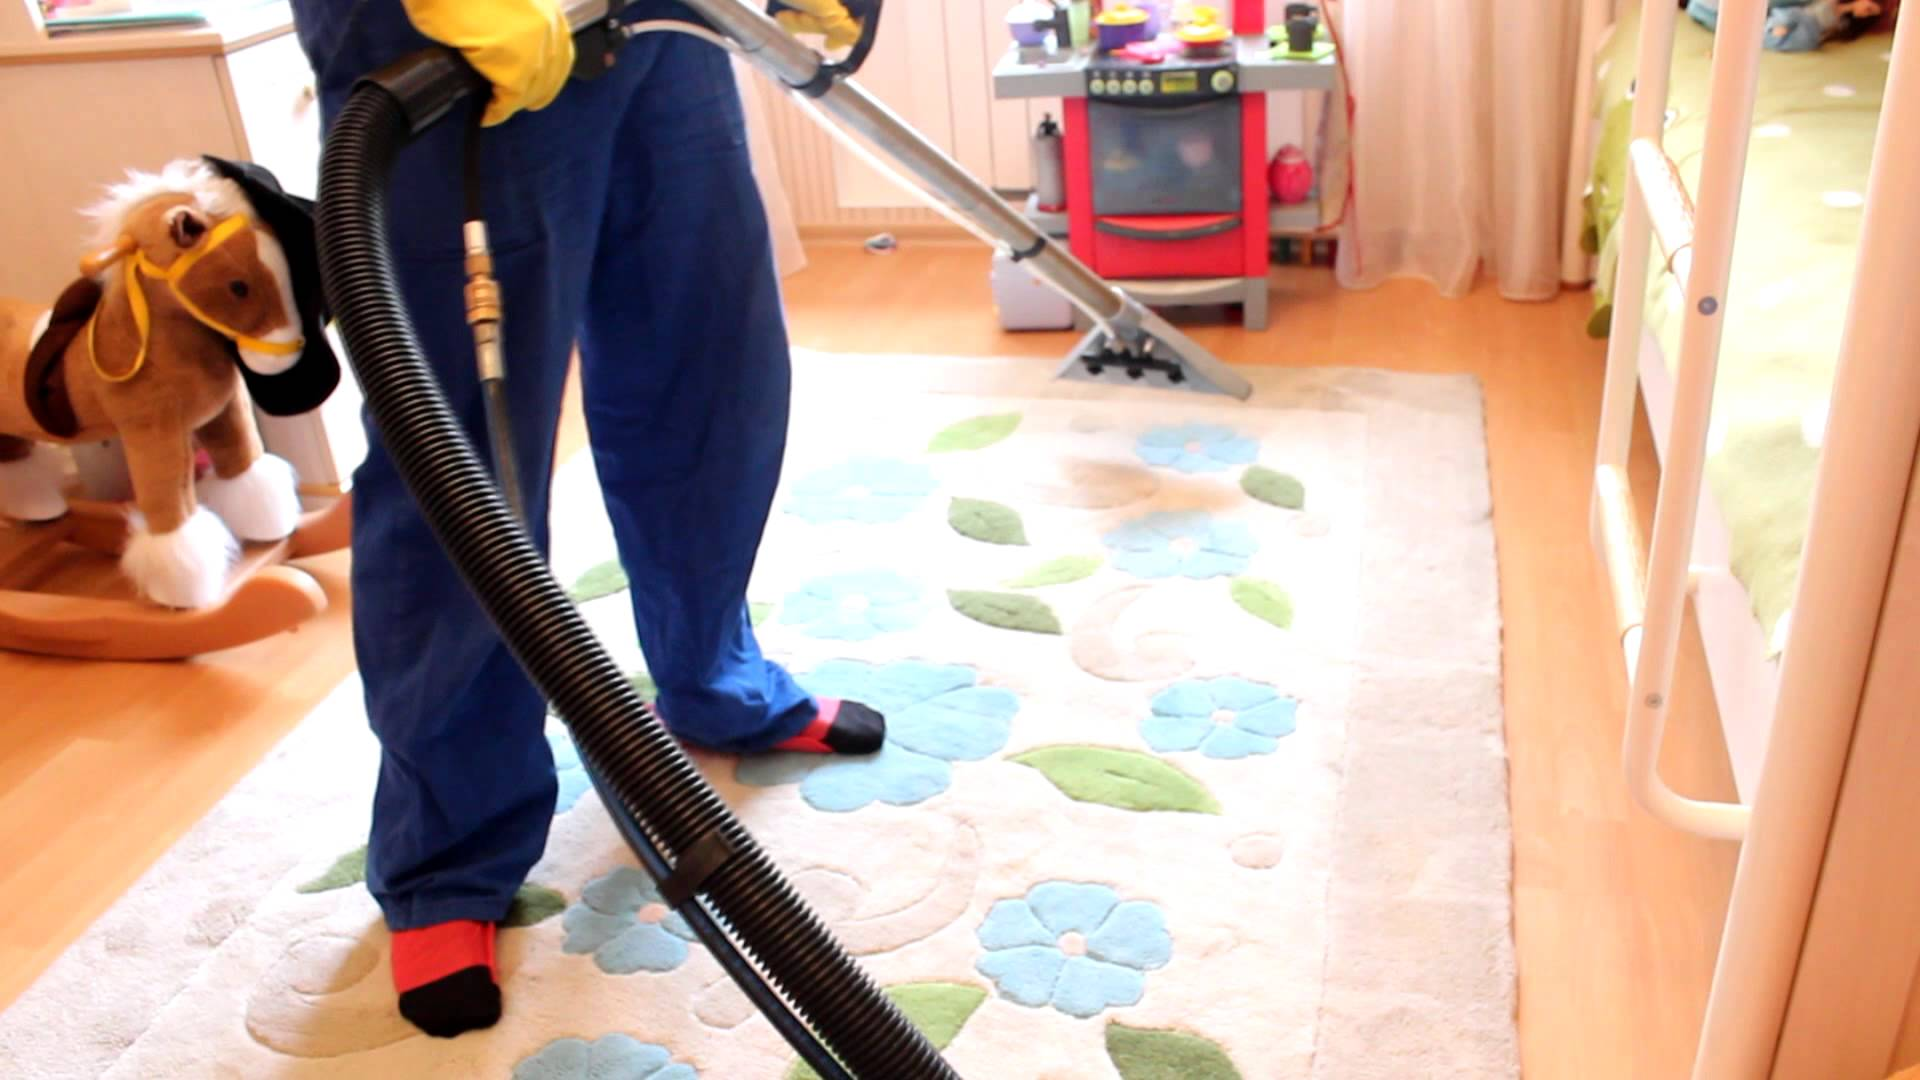 Old Fashioned Home Cleaning Remedies - How To Clean Anything 14